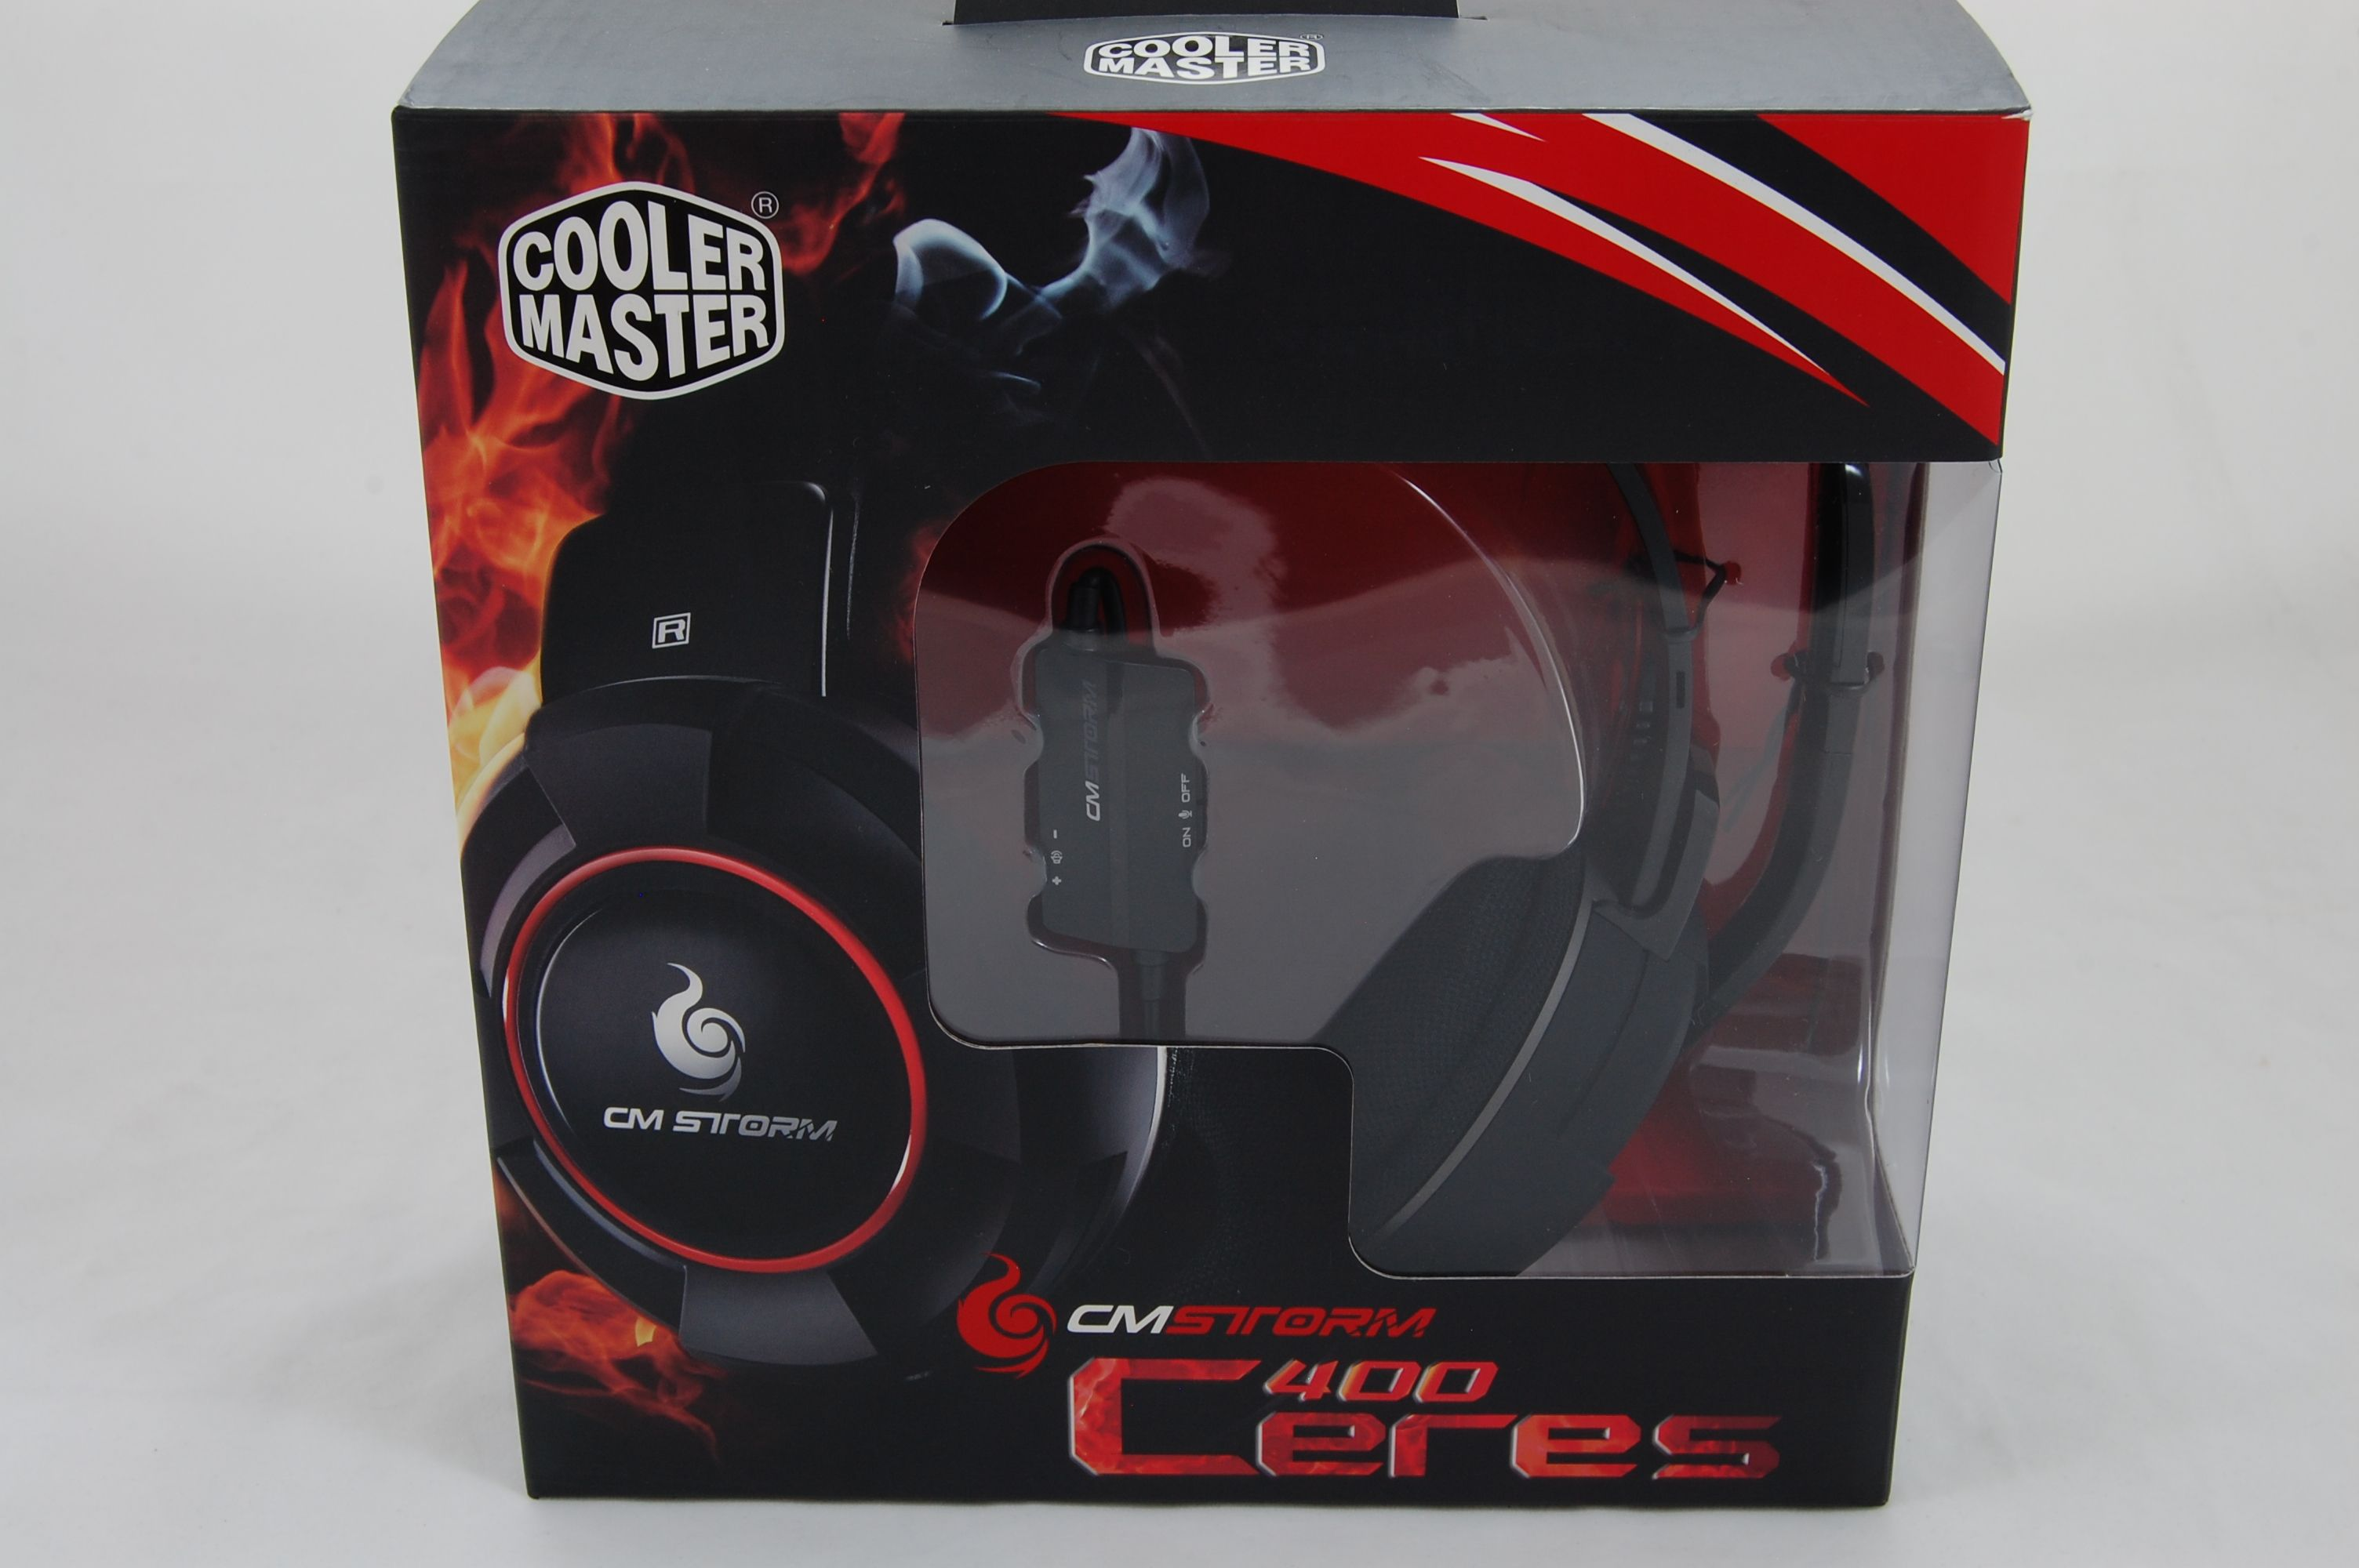 Cooler Master CM Storm Ceres 400 Packaging